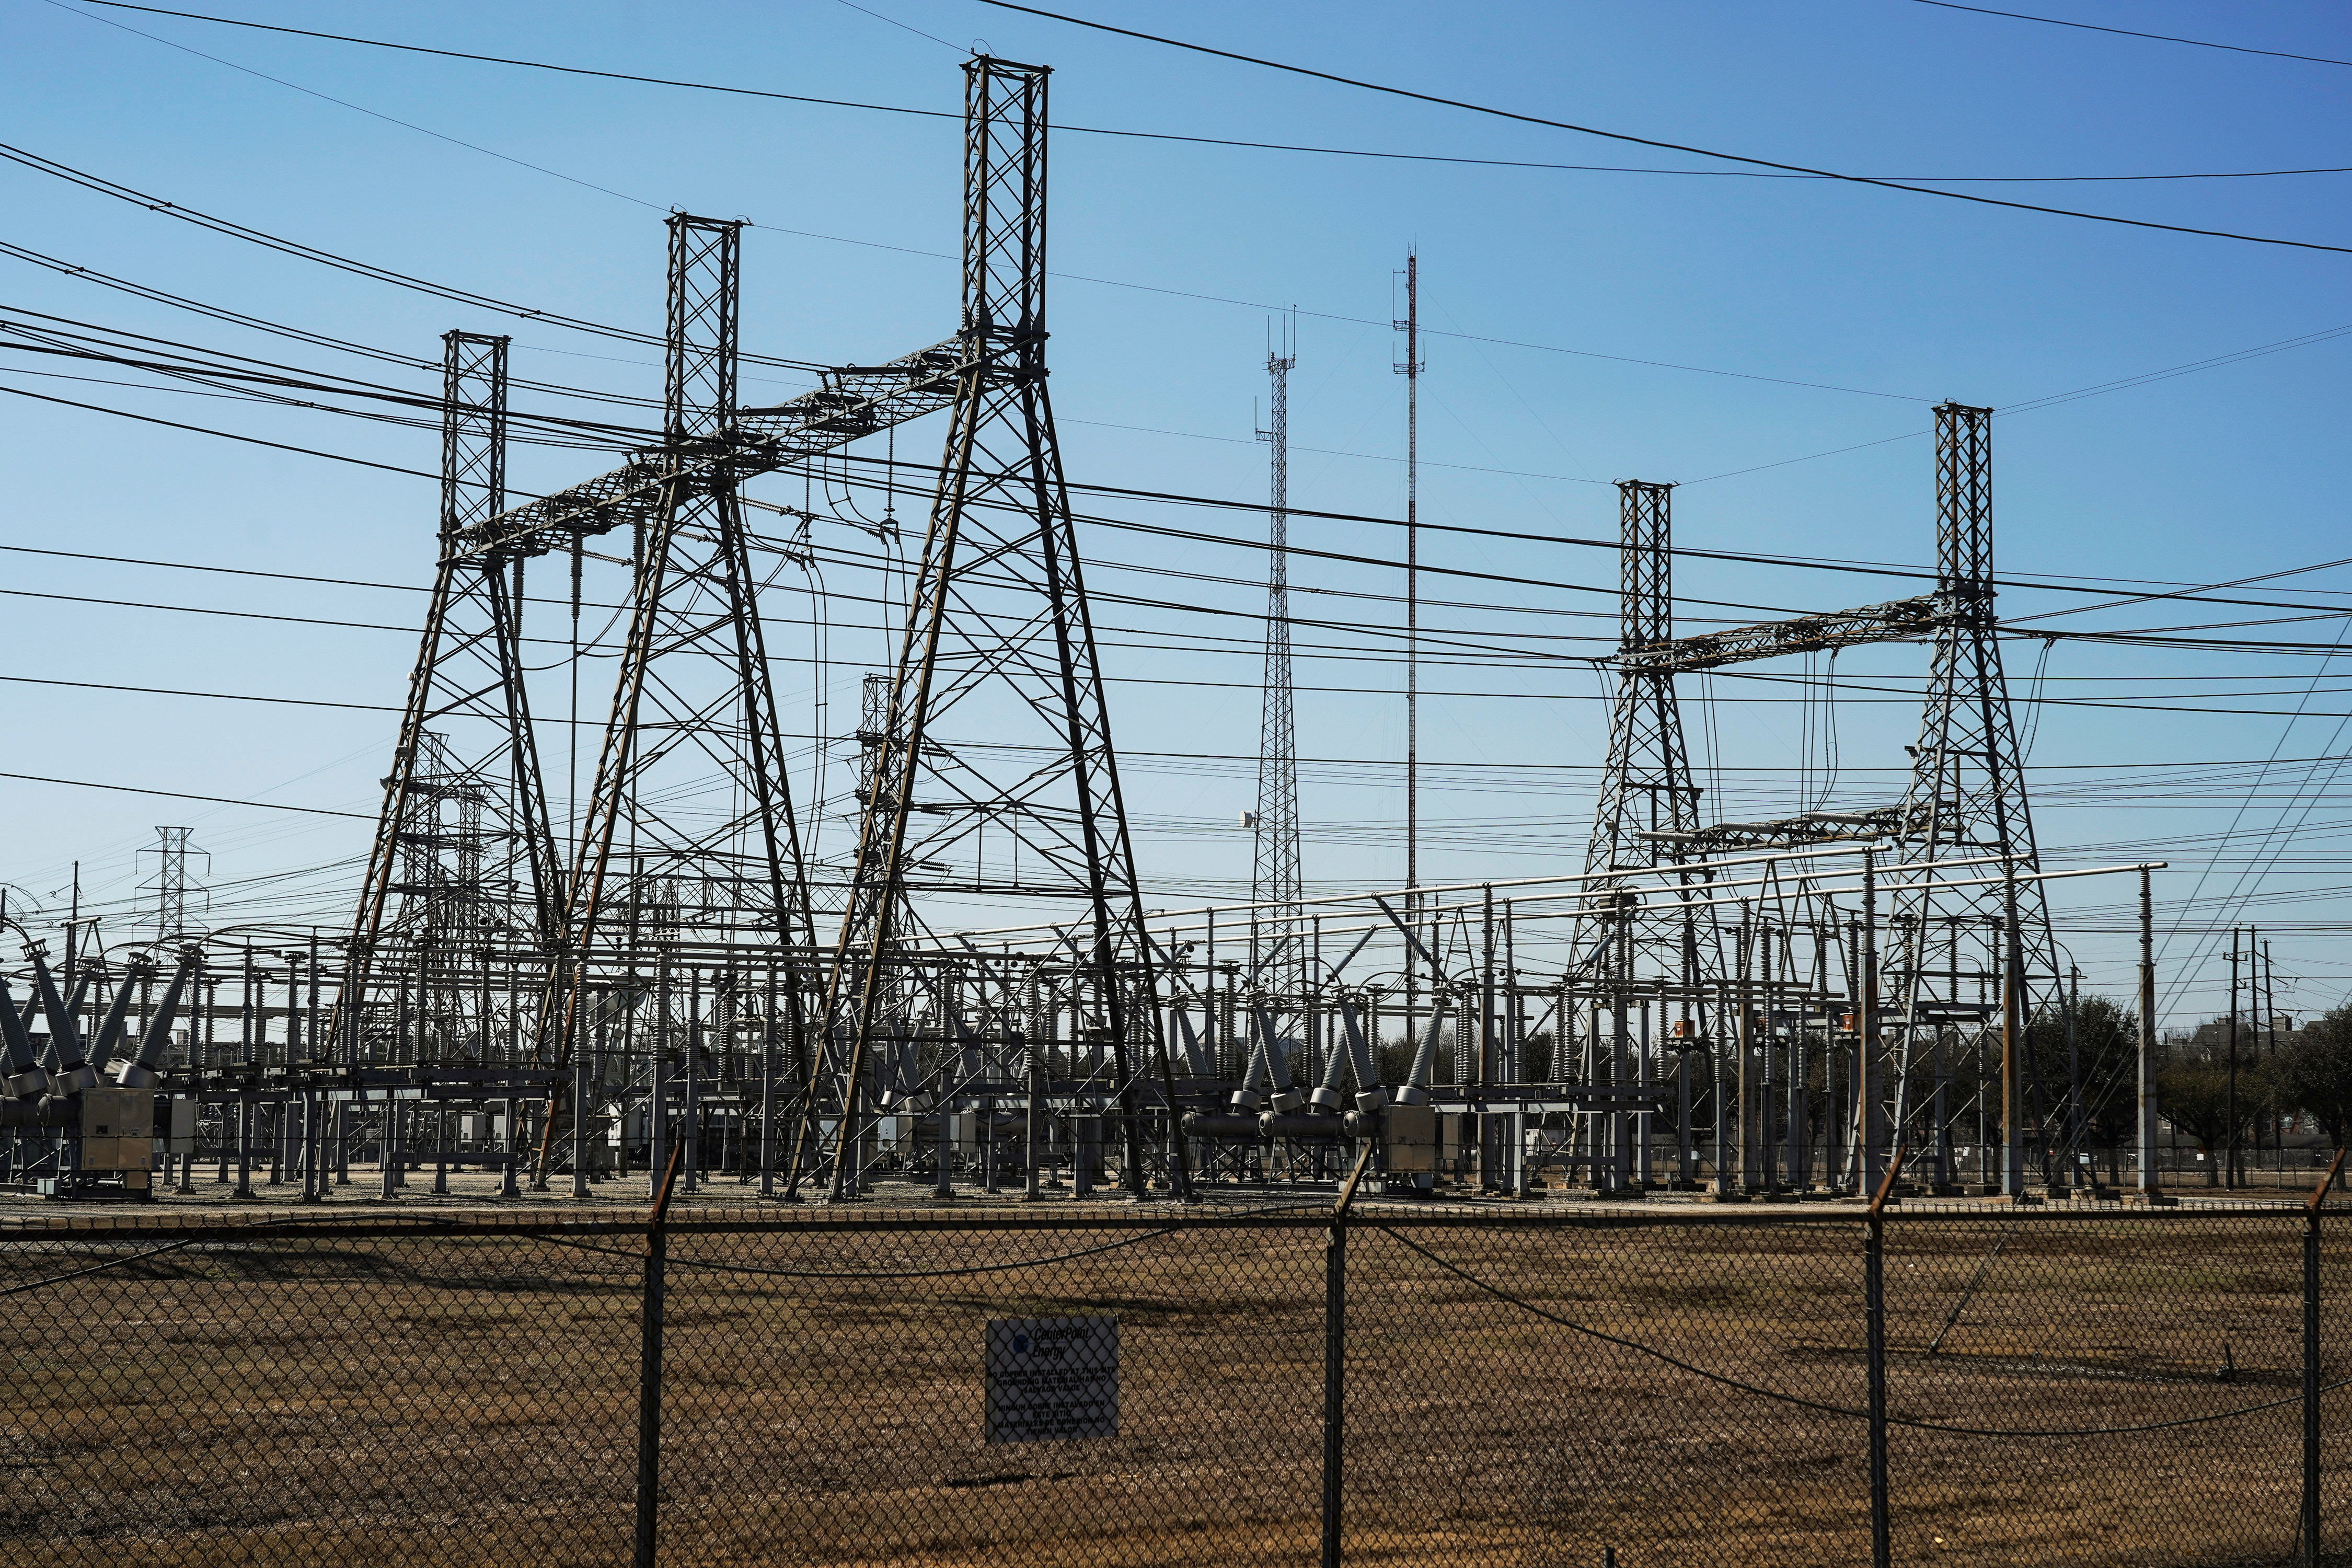 An electrical substation is seen after winter weather caused electricity blackouts in Houston, Texas, U.S. February 20, 2021.  REUTERS/Go Nakamura